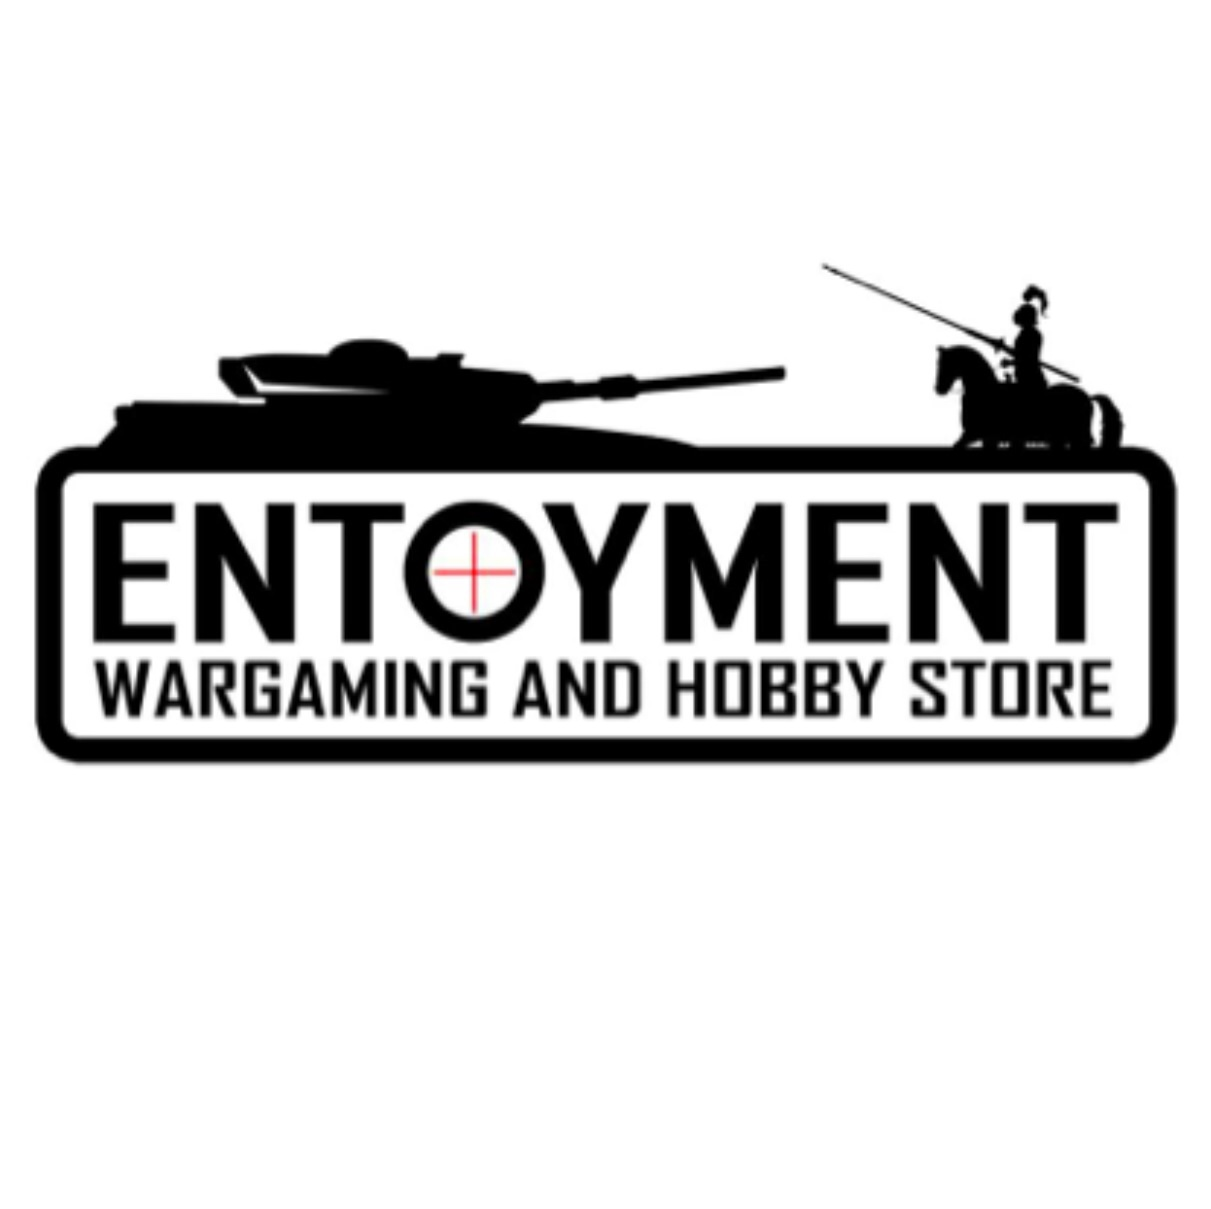 Entoyment Wargaming and Hobby Store